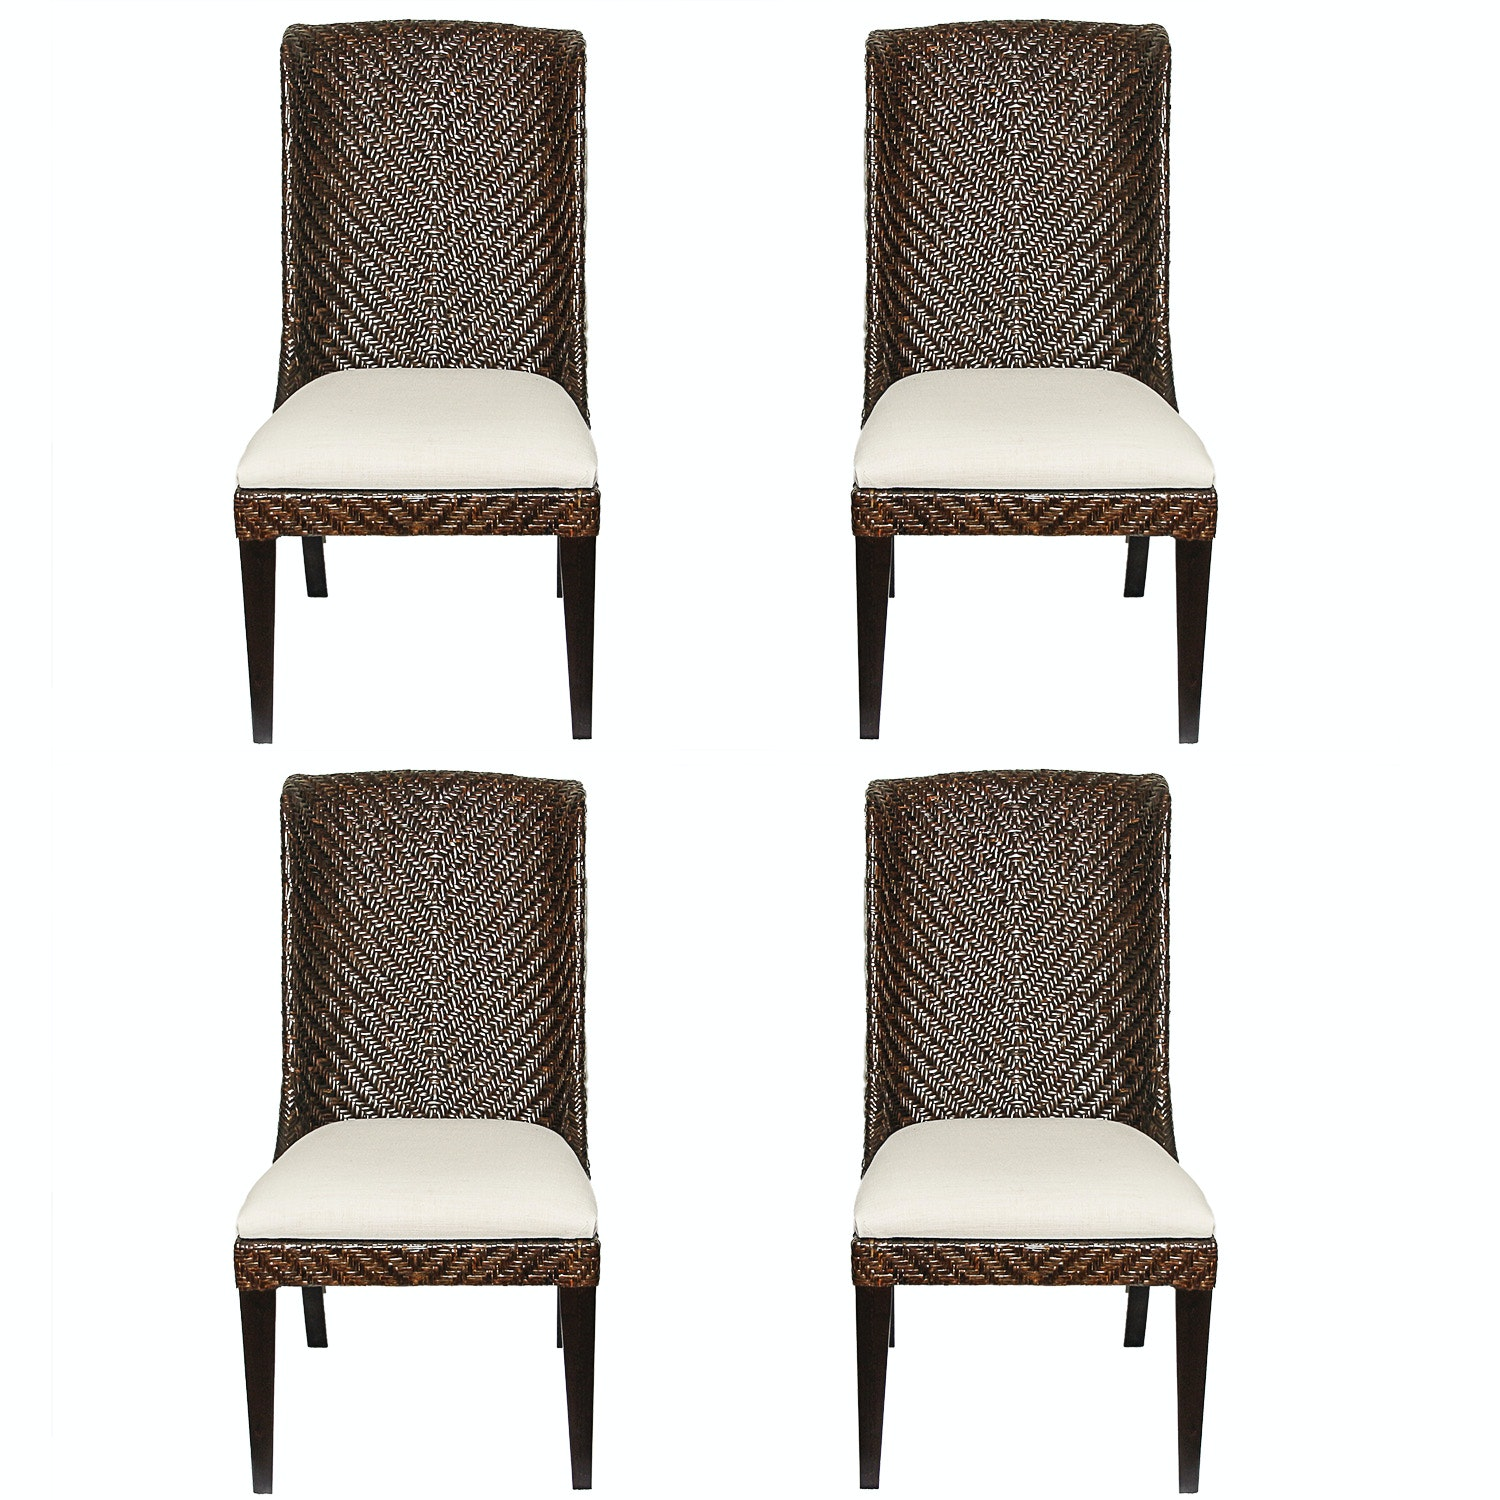 Woven Dining Chairs by Bassett Furniture